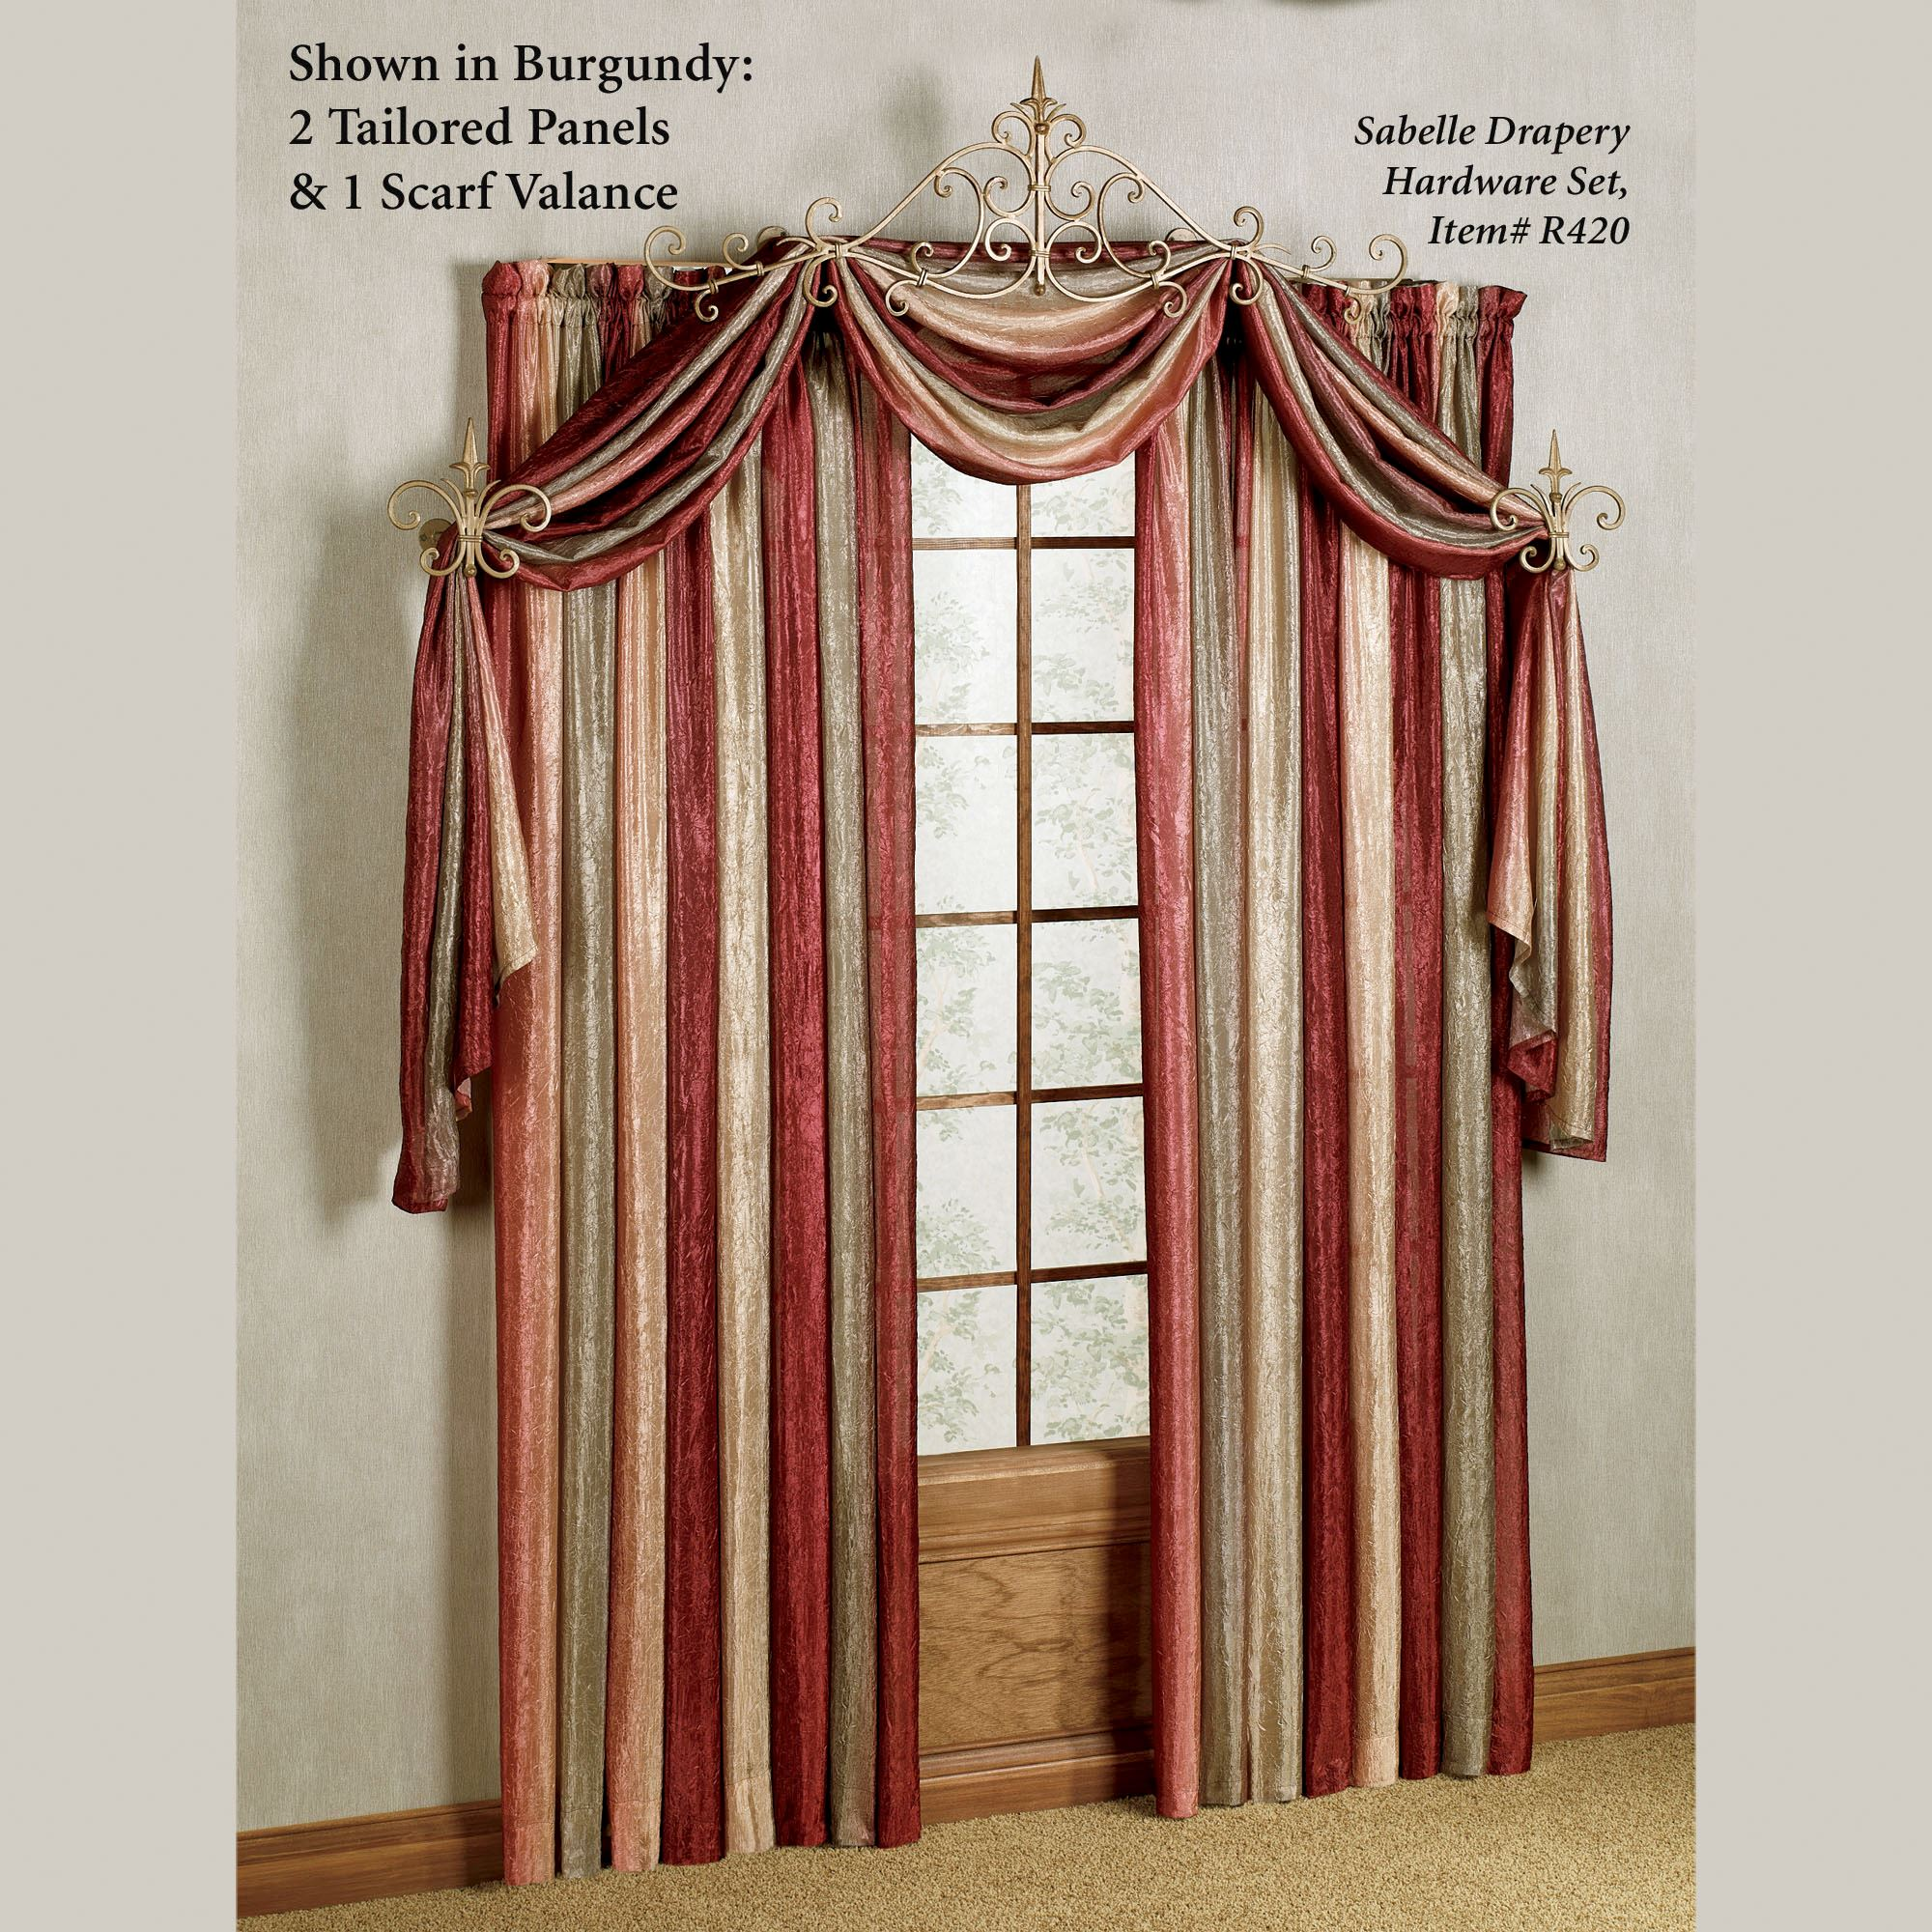 inch drapes ready made delightful window ru rust fantastic of full lined valances glorious curtains homes noteworthy drapery kitchen valance color skirts tivoli beige cool dramatic with stunning satisfying cute light noticeabl bed r panels colored size bathroom and